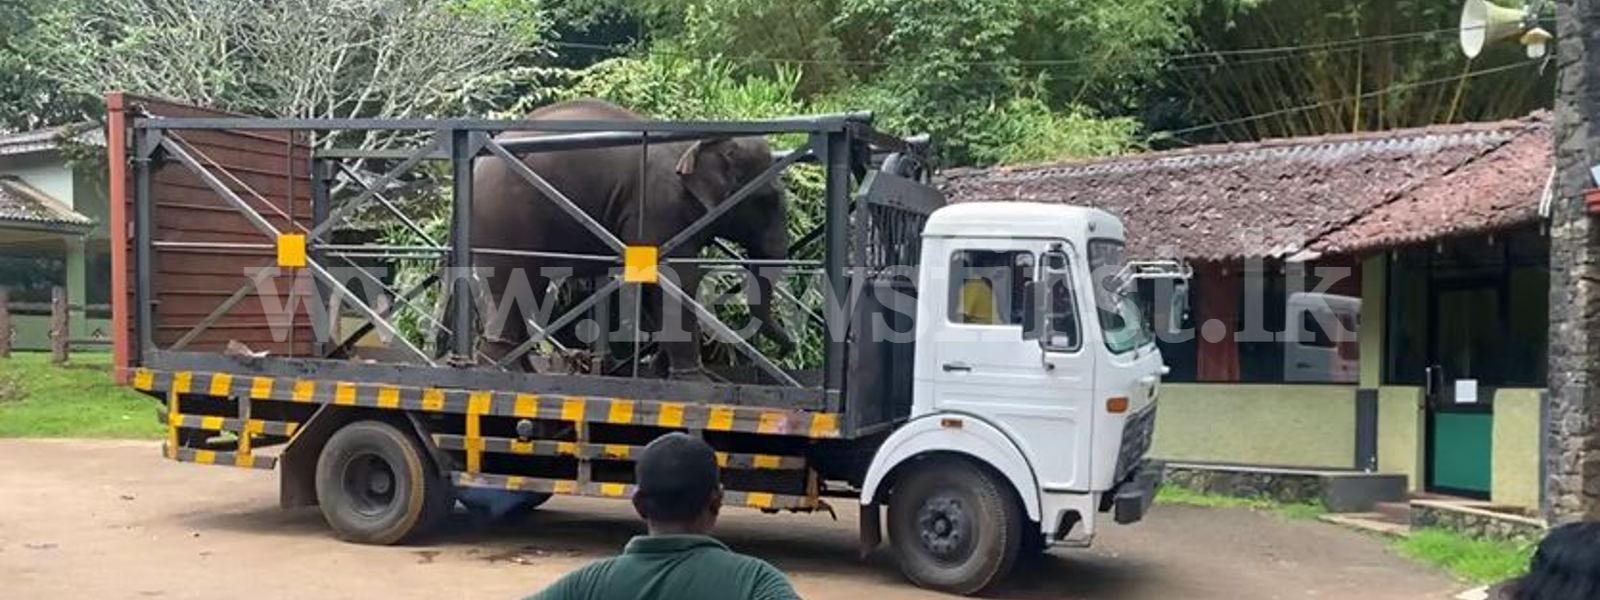 Detained Elephants returned to previous owners